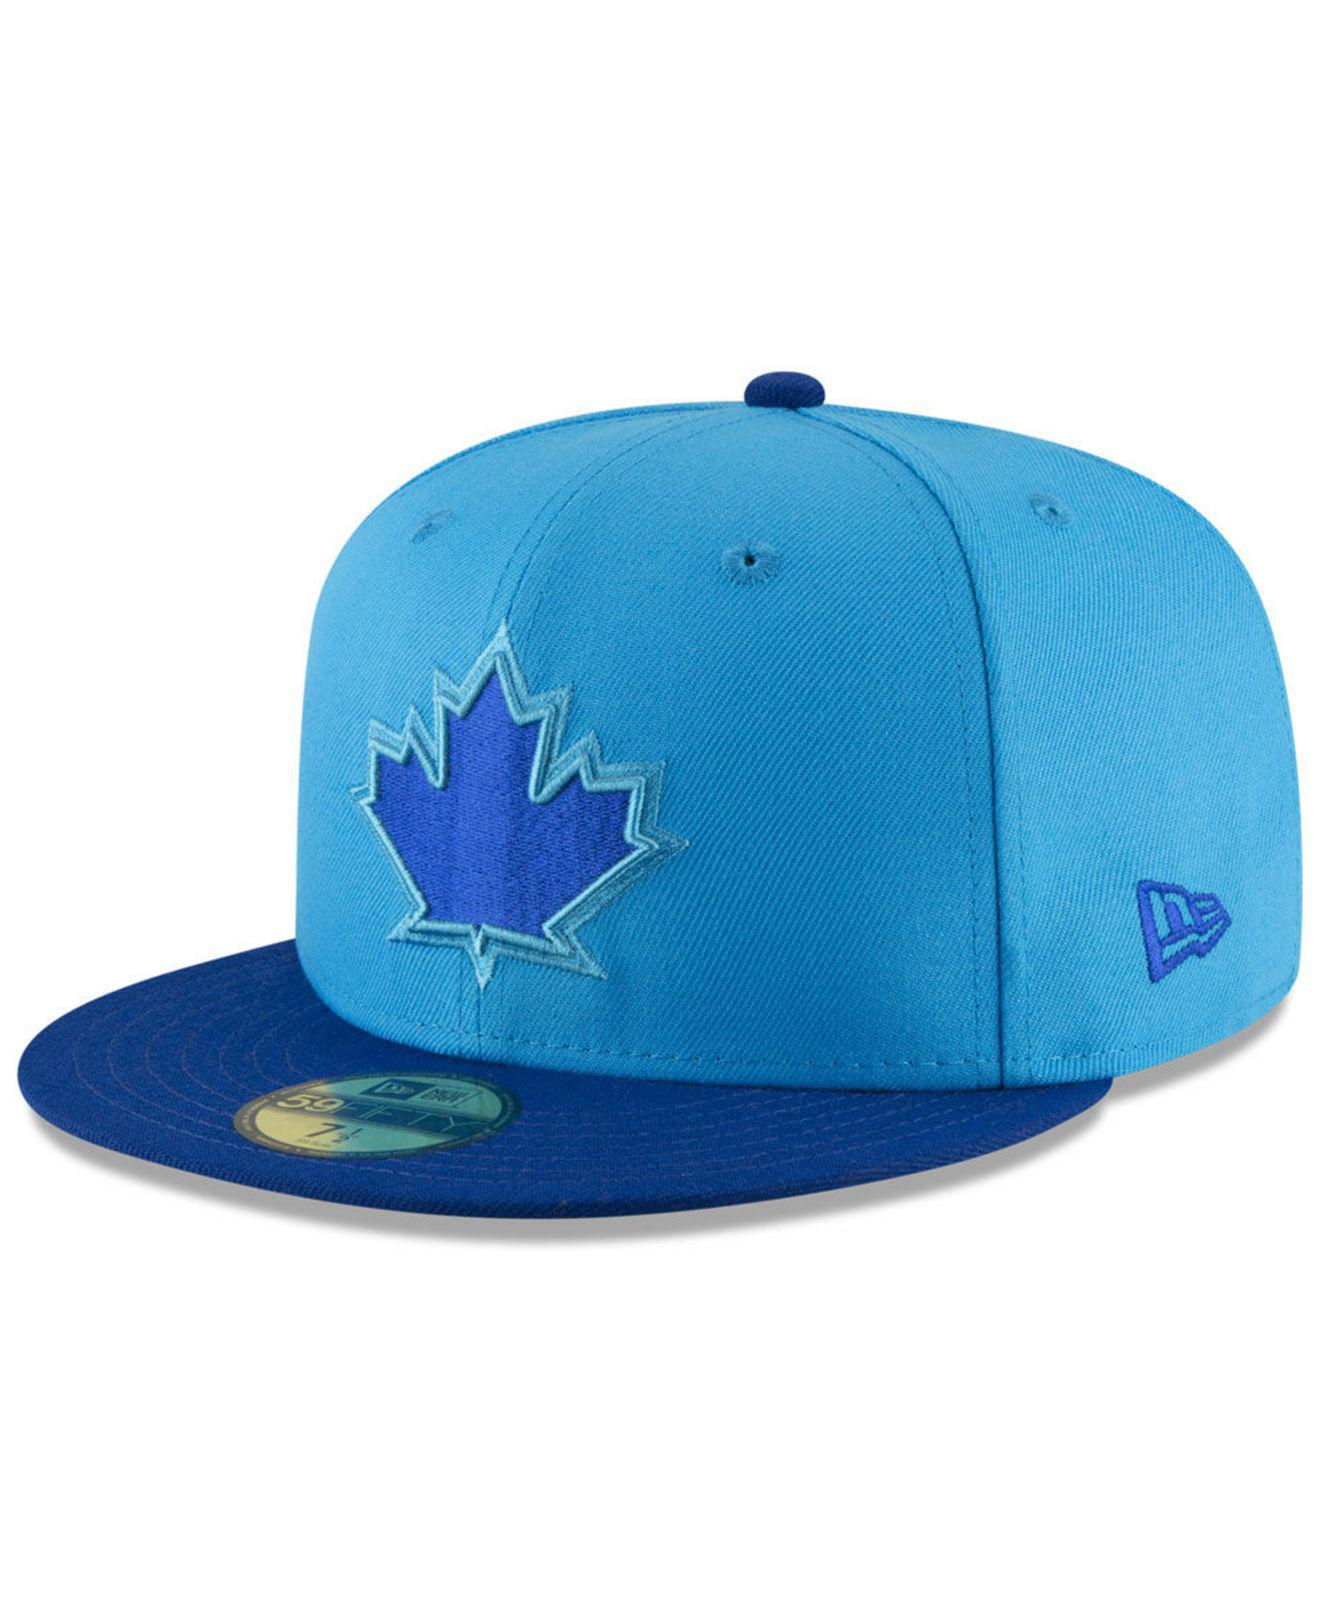 info for 96234 4e031 ... new era mlb classic veteran 59fifty cap 20948674 online 01c43 c3a38   official ktz. mens toronto blue jays players weekend 59fifty fitted cap  aac2b 4df13